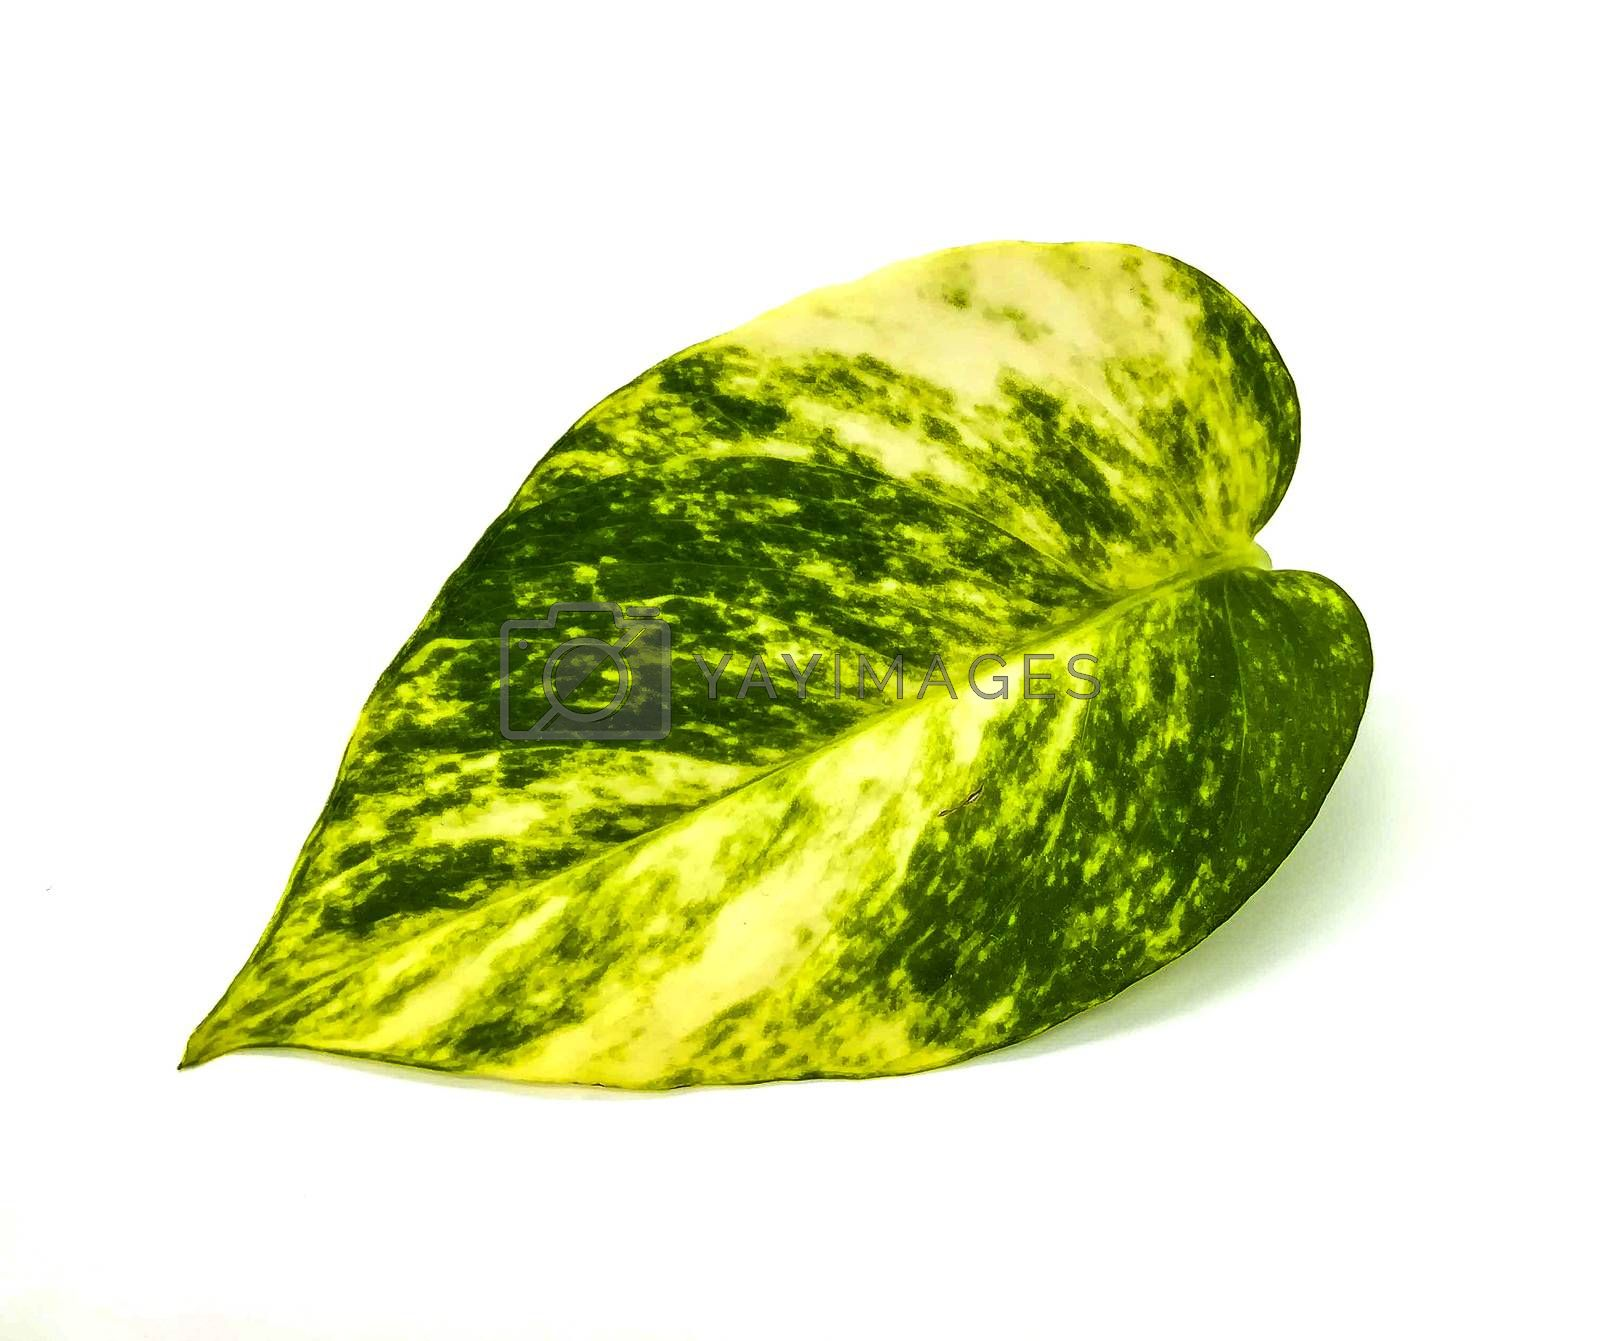 Pretty leaf with green and yellow tones on white background